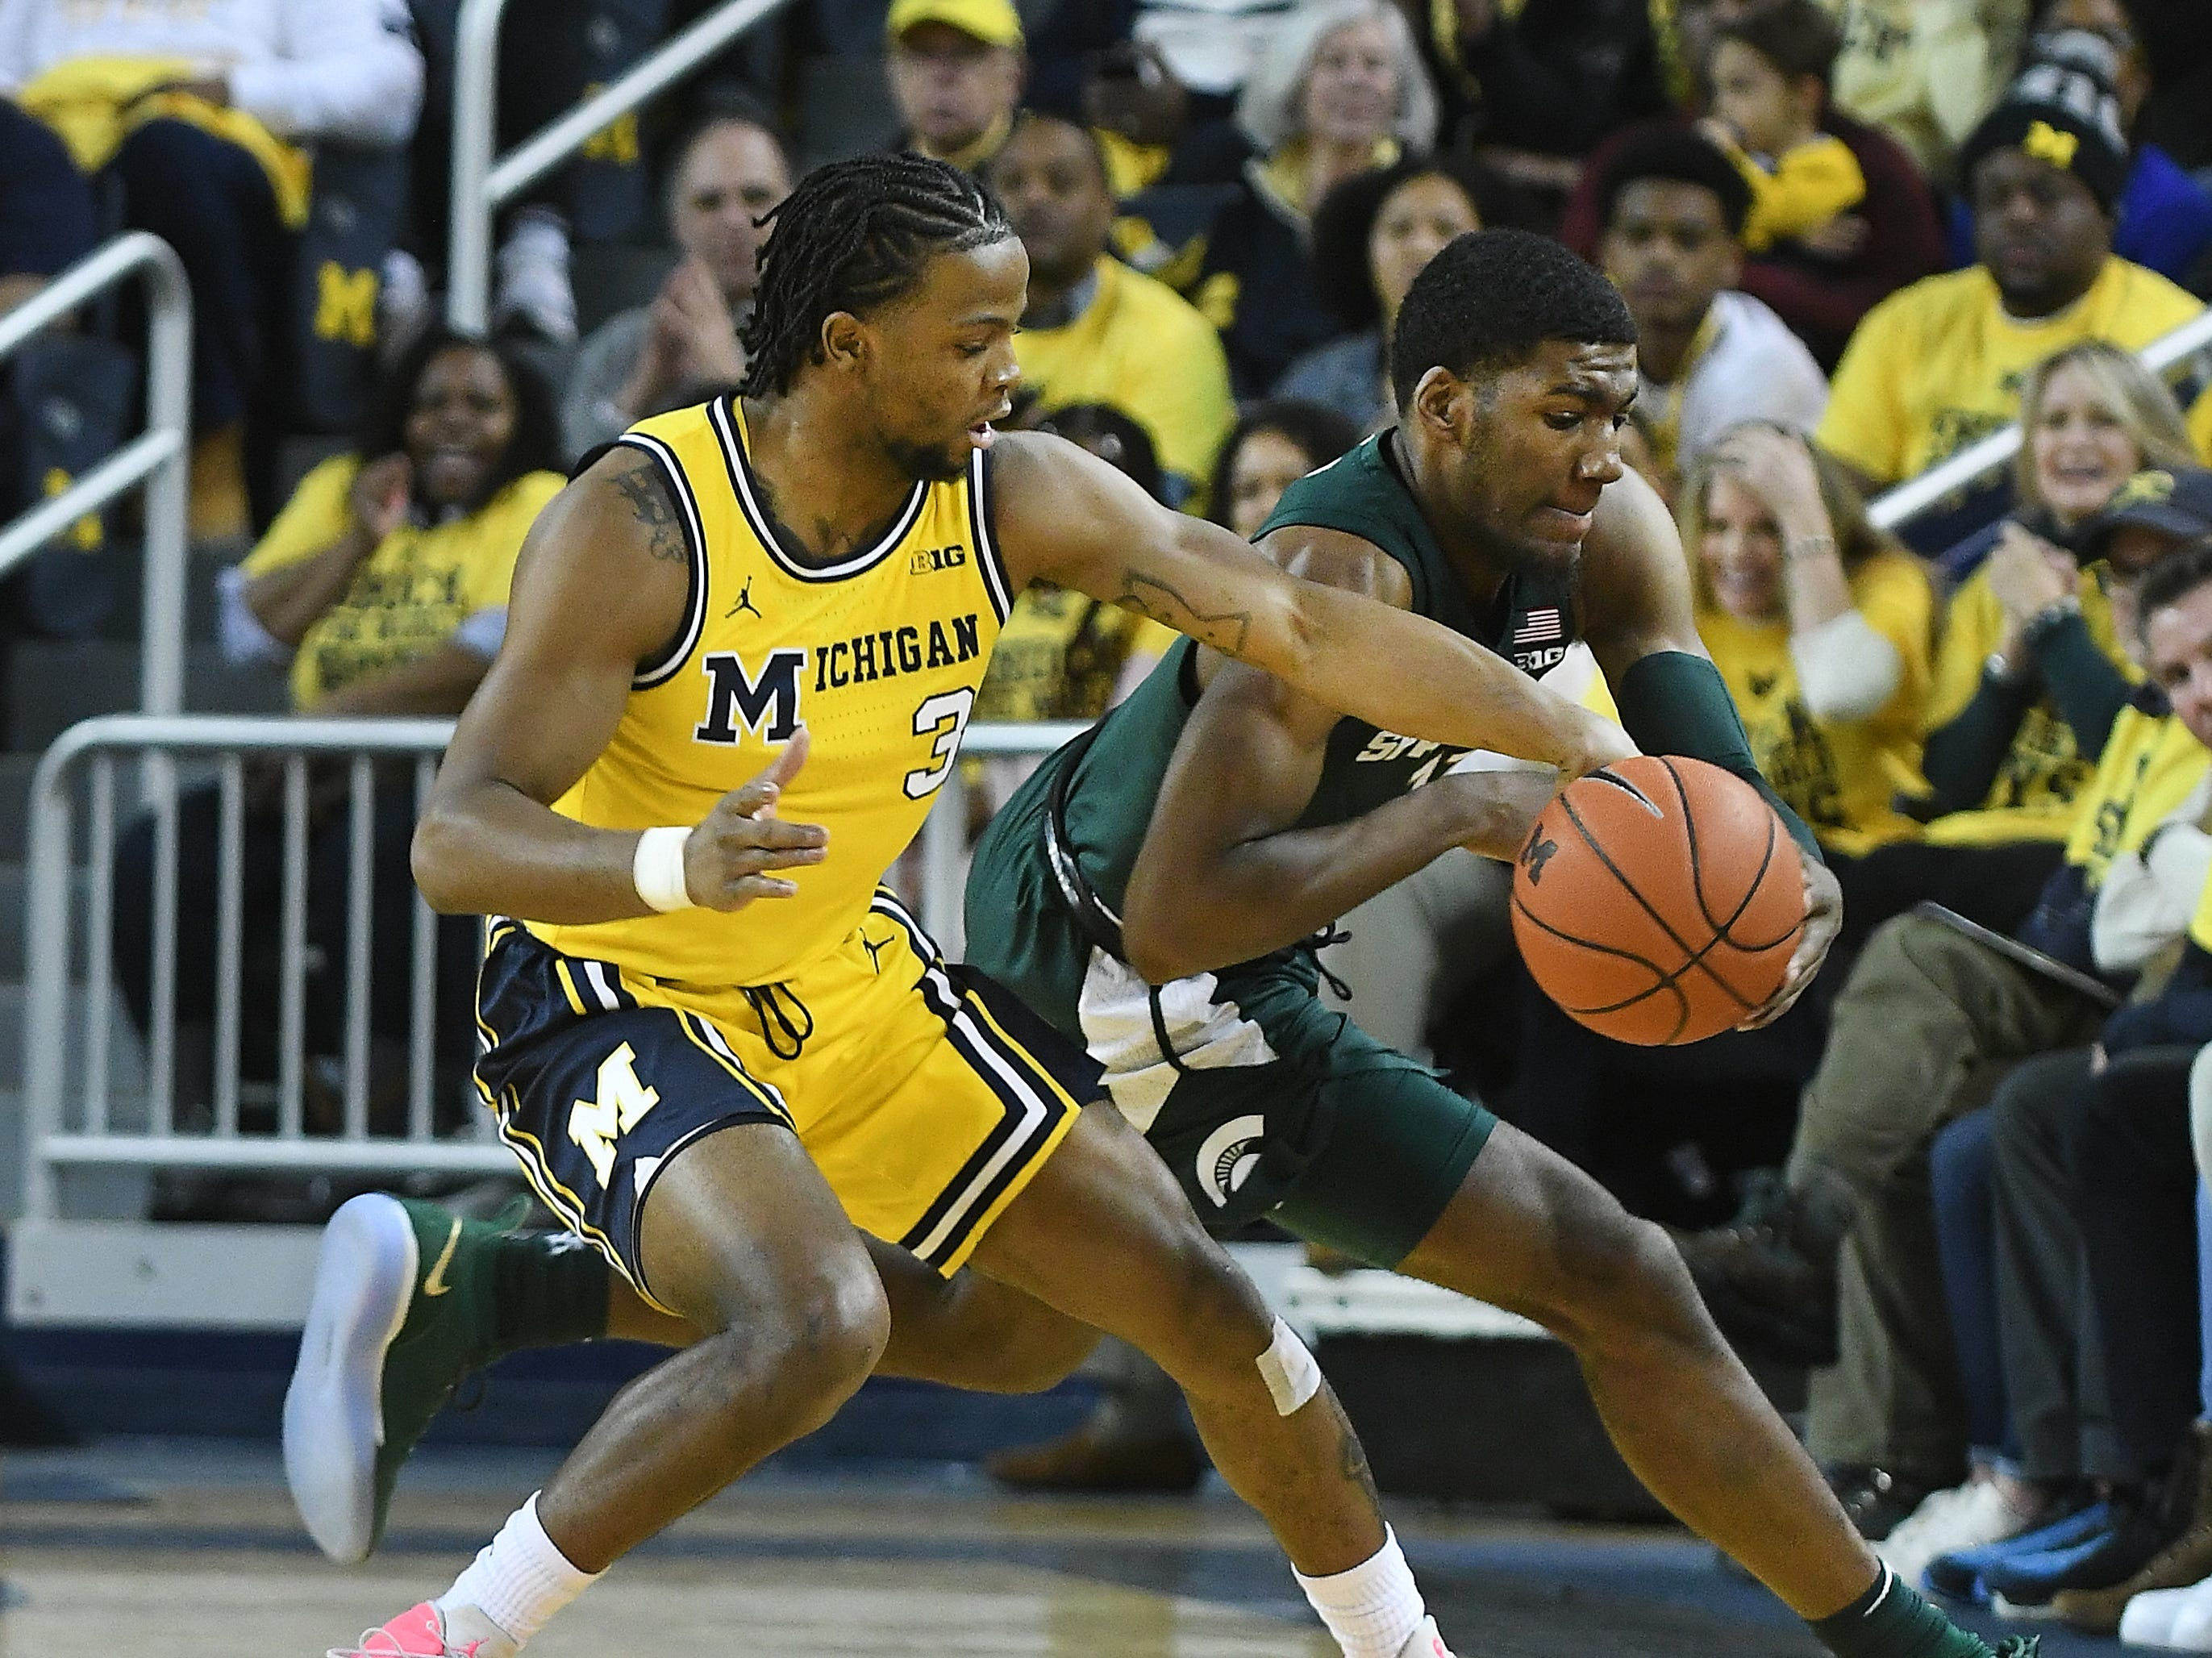 Michigan's Zavier Simpson and Michigan State's Aaron Henry battle for a loose ball in the first half.